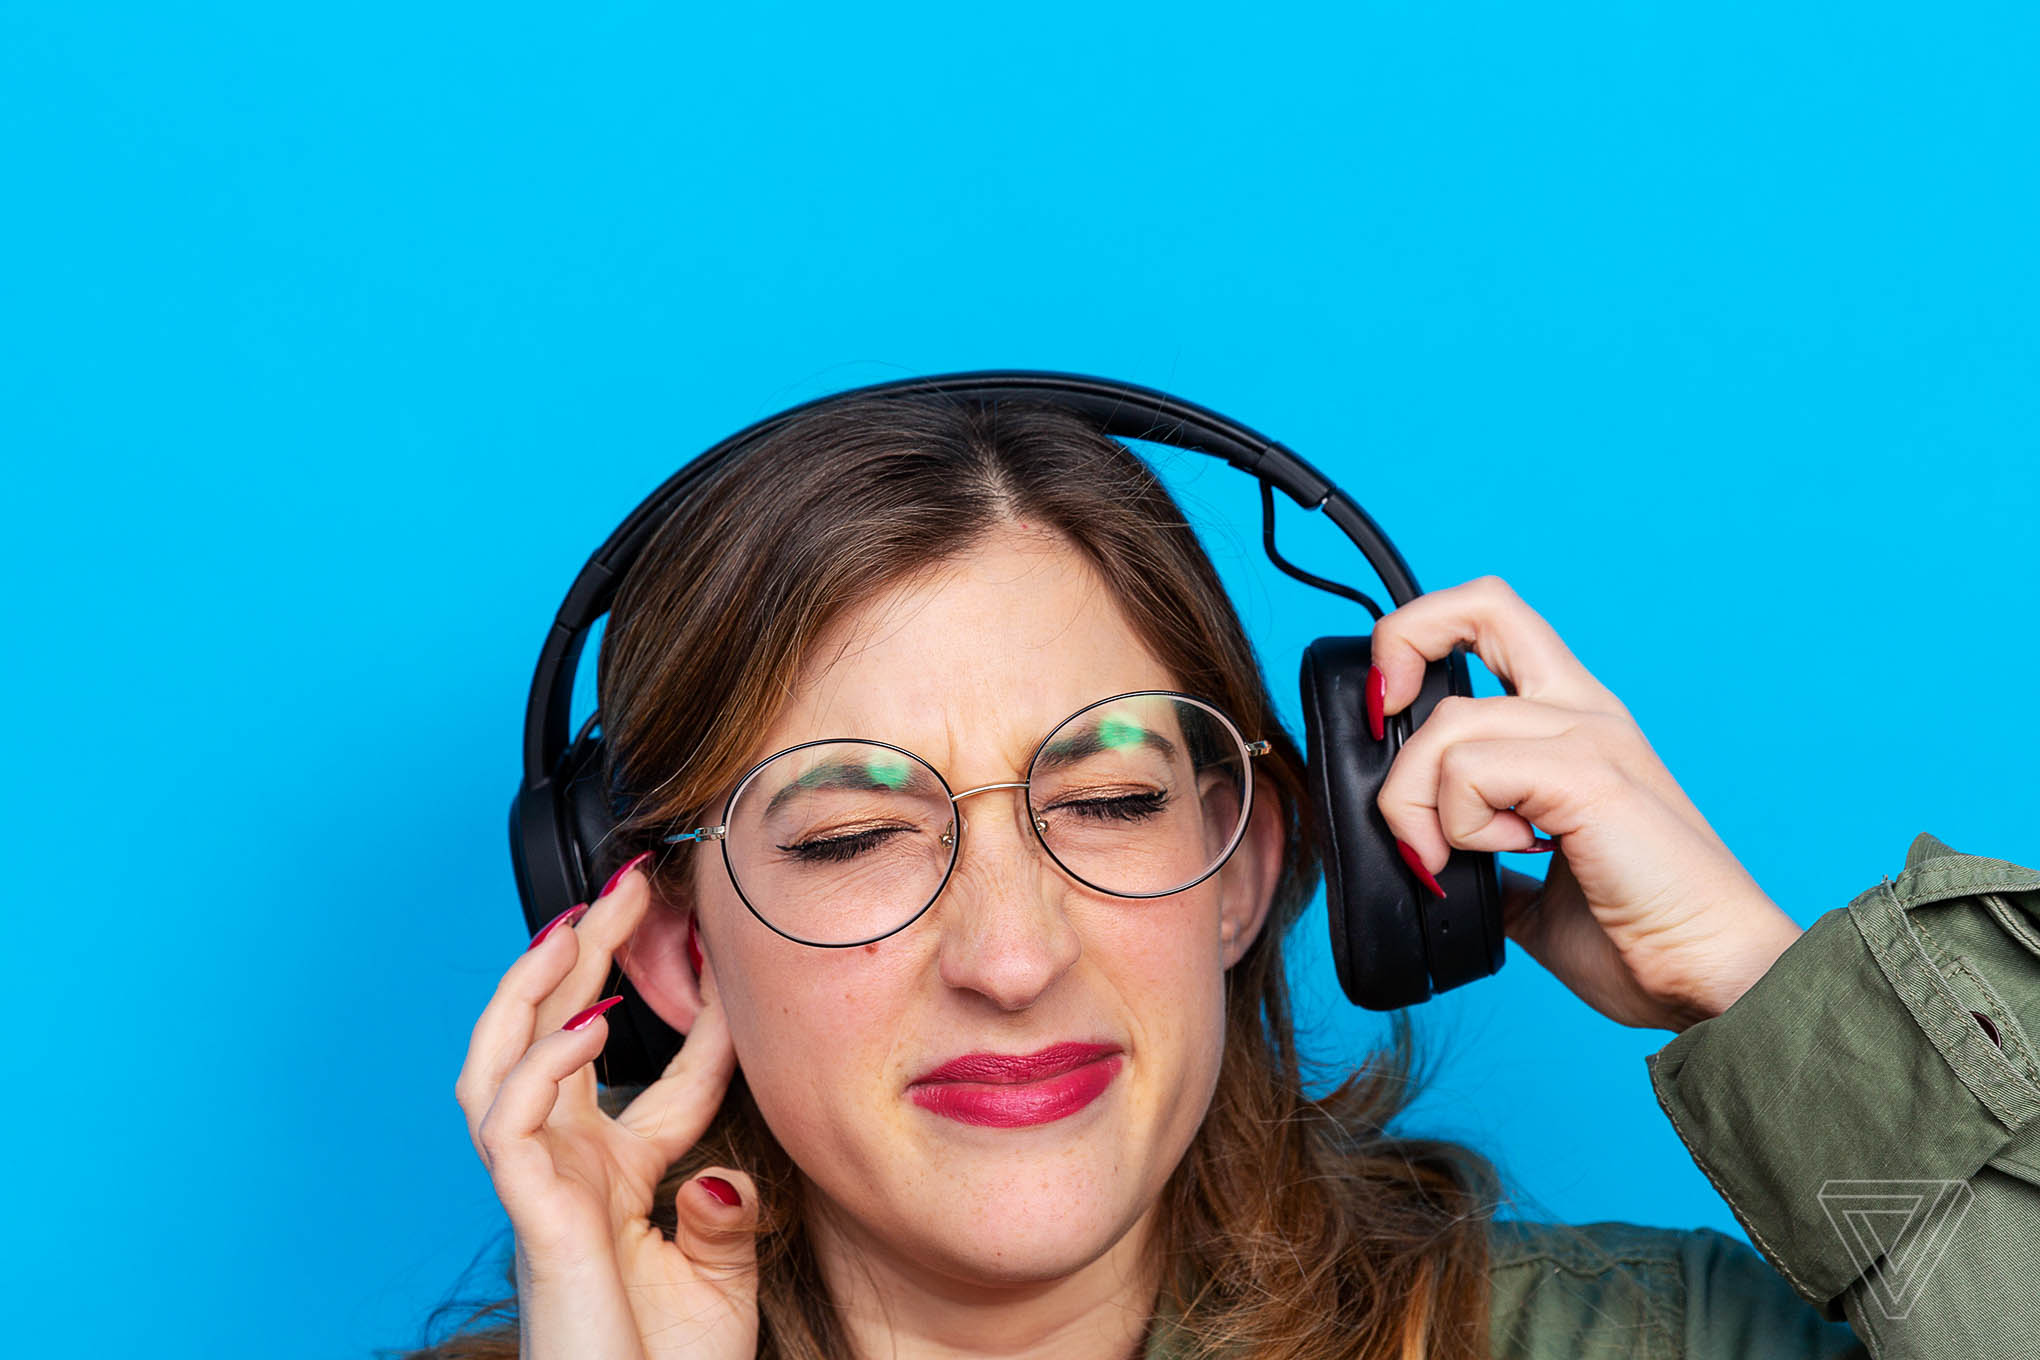 Listening To Music All Day Can Damage Your Hearing So Be